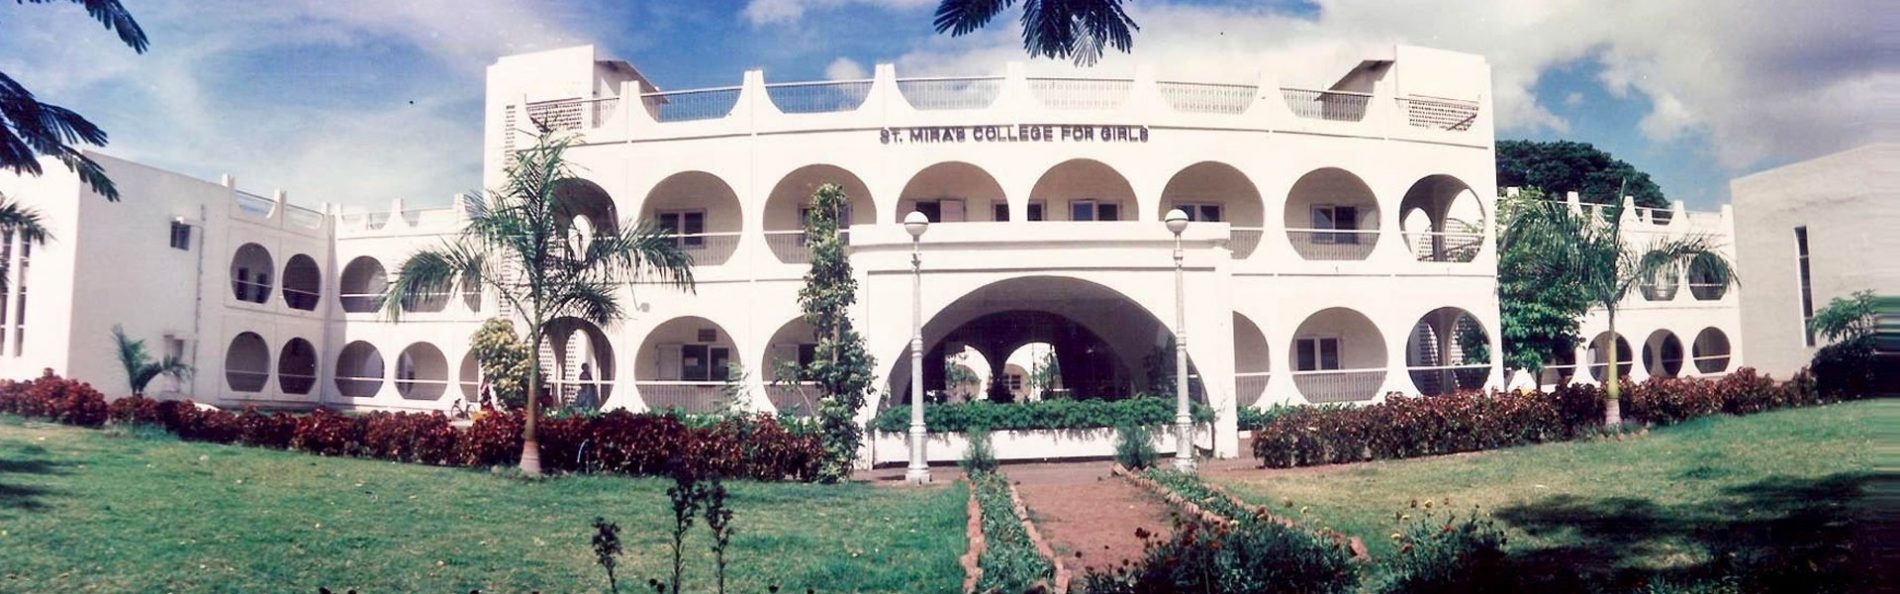 St. Mira's College For Girls